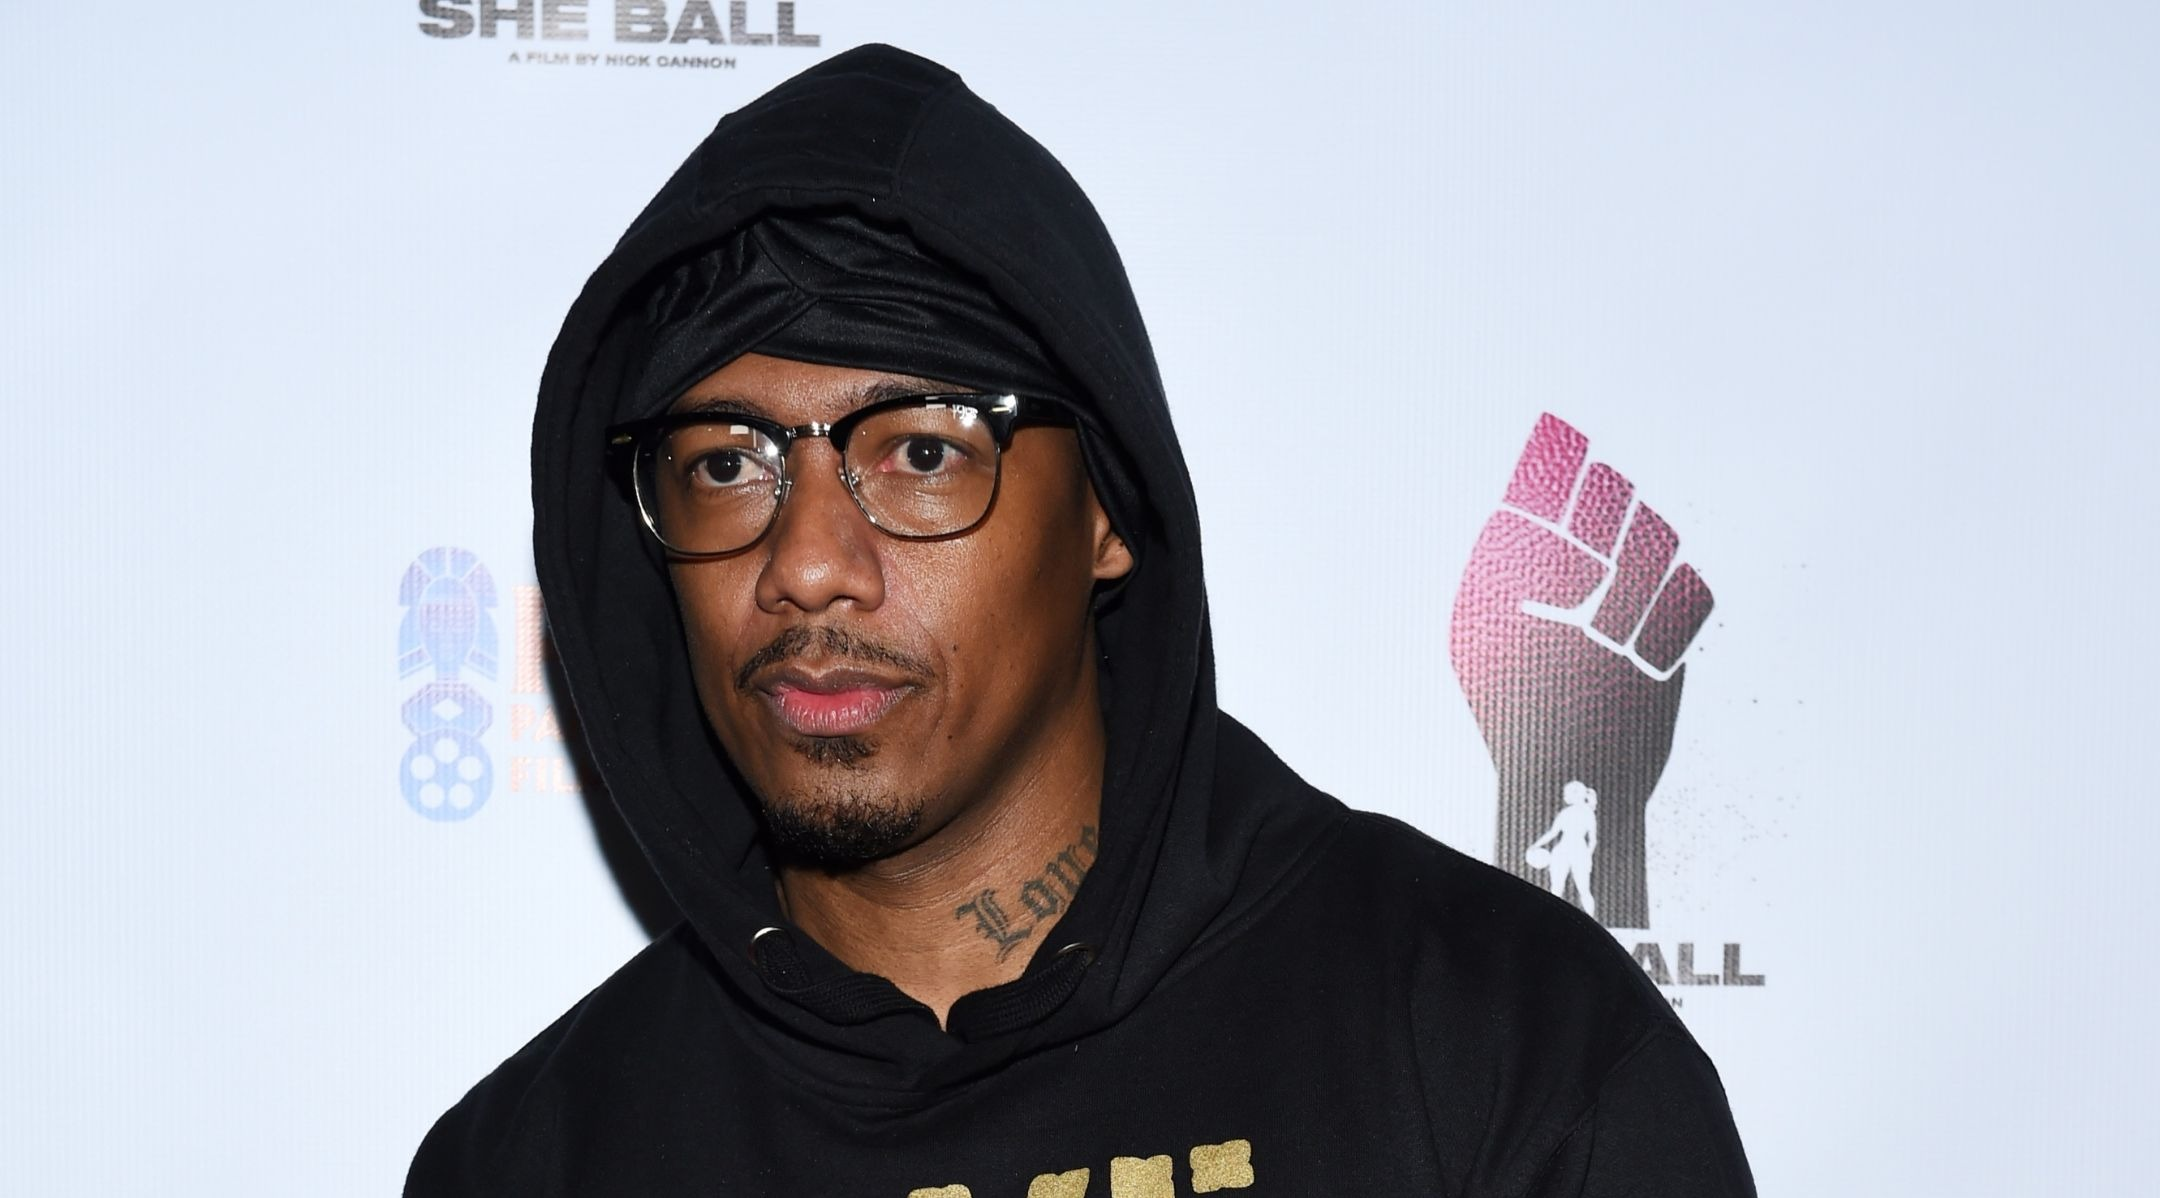 ViacomCBS fired Nick Cannon over anti-Semitic comments. He claims he's gotten an 'outpouring of love...